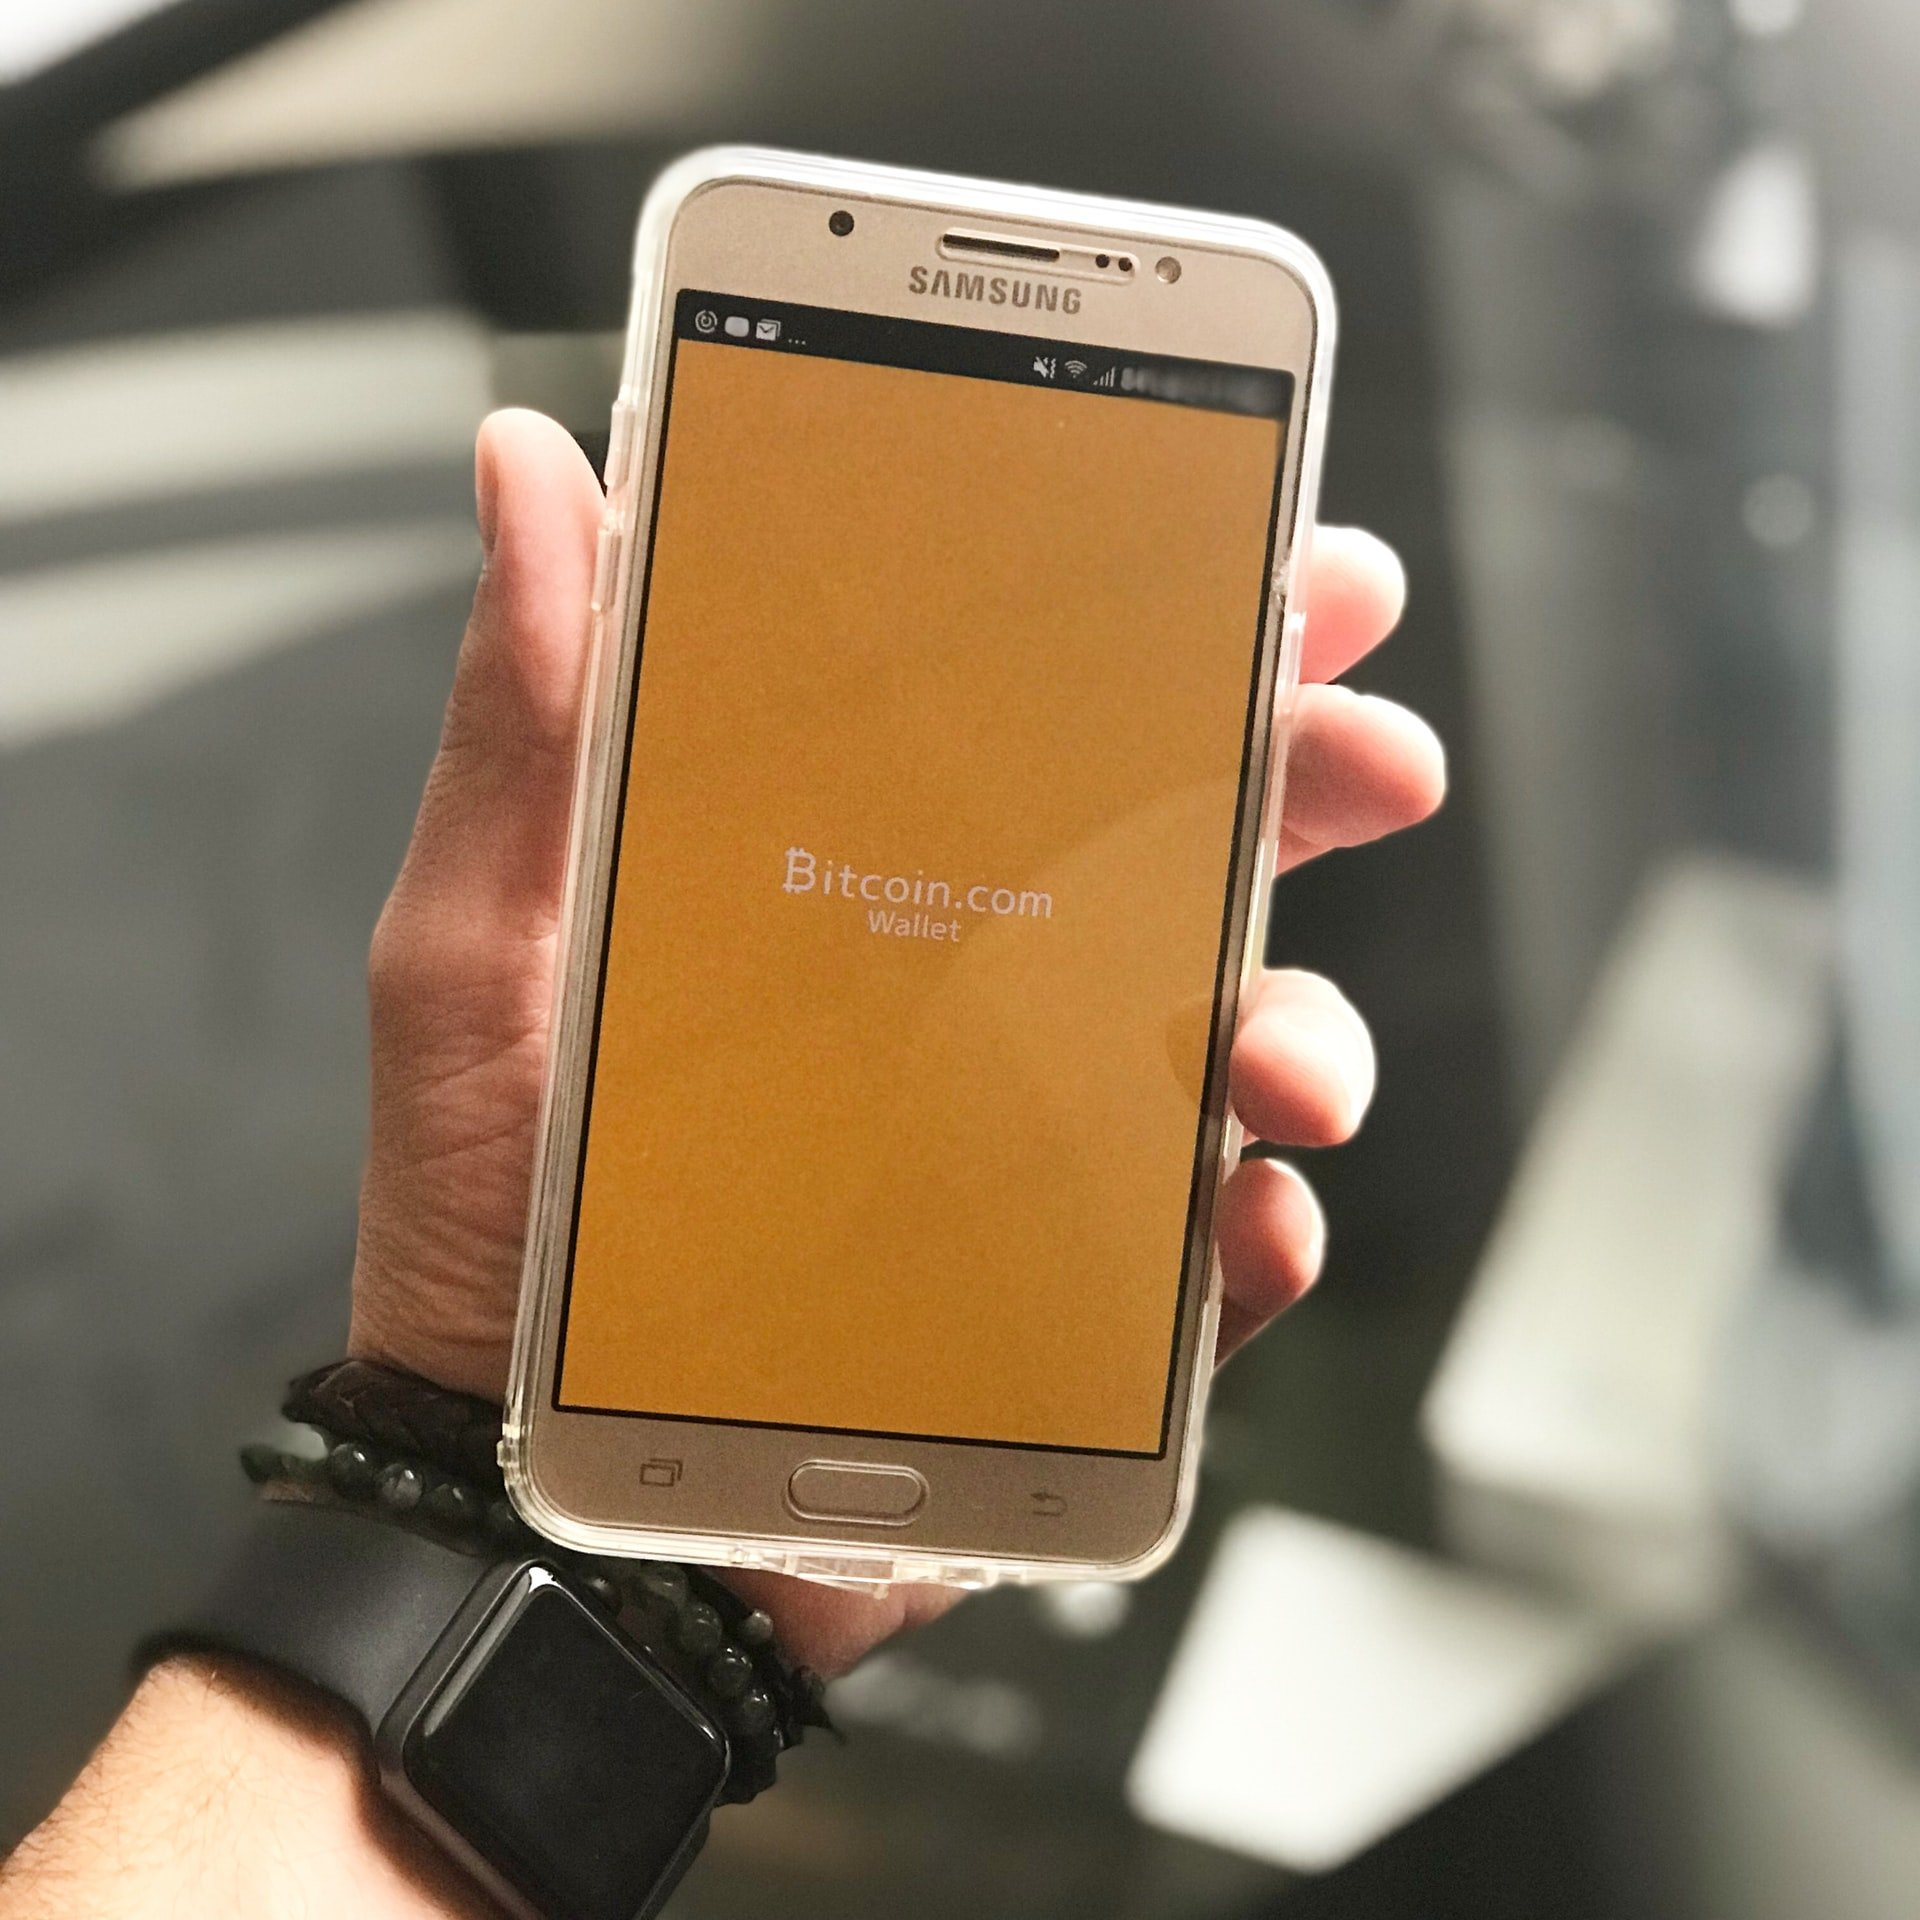 Phone with Bitcoin wallet app